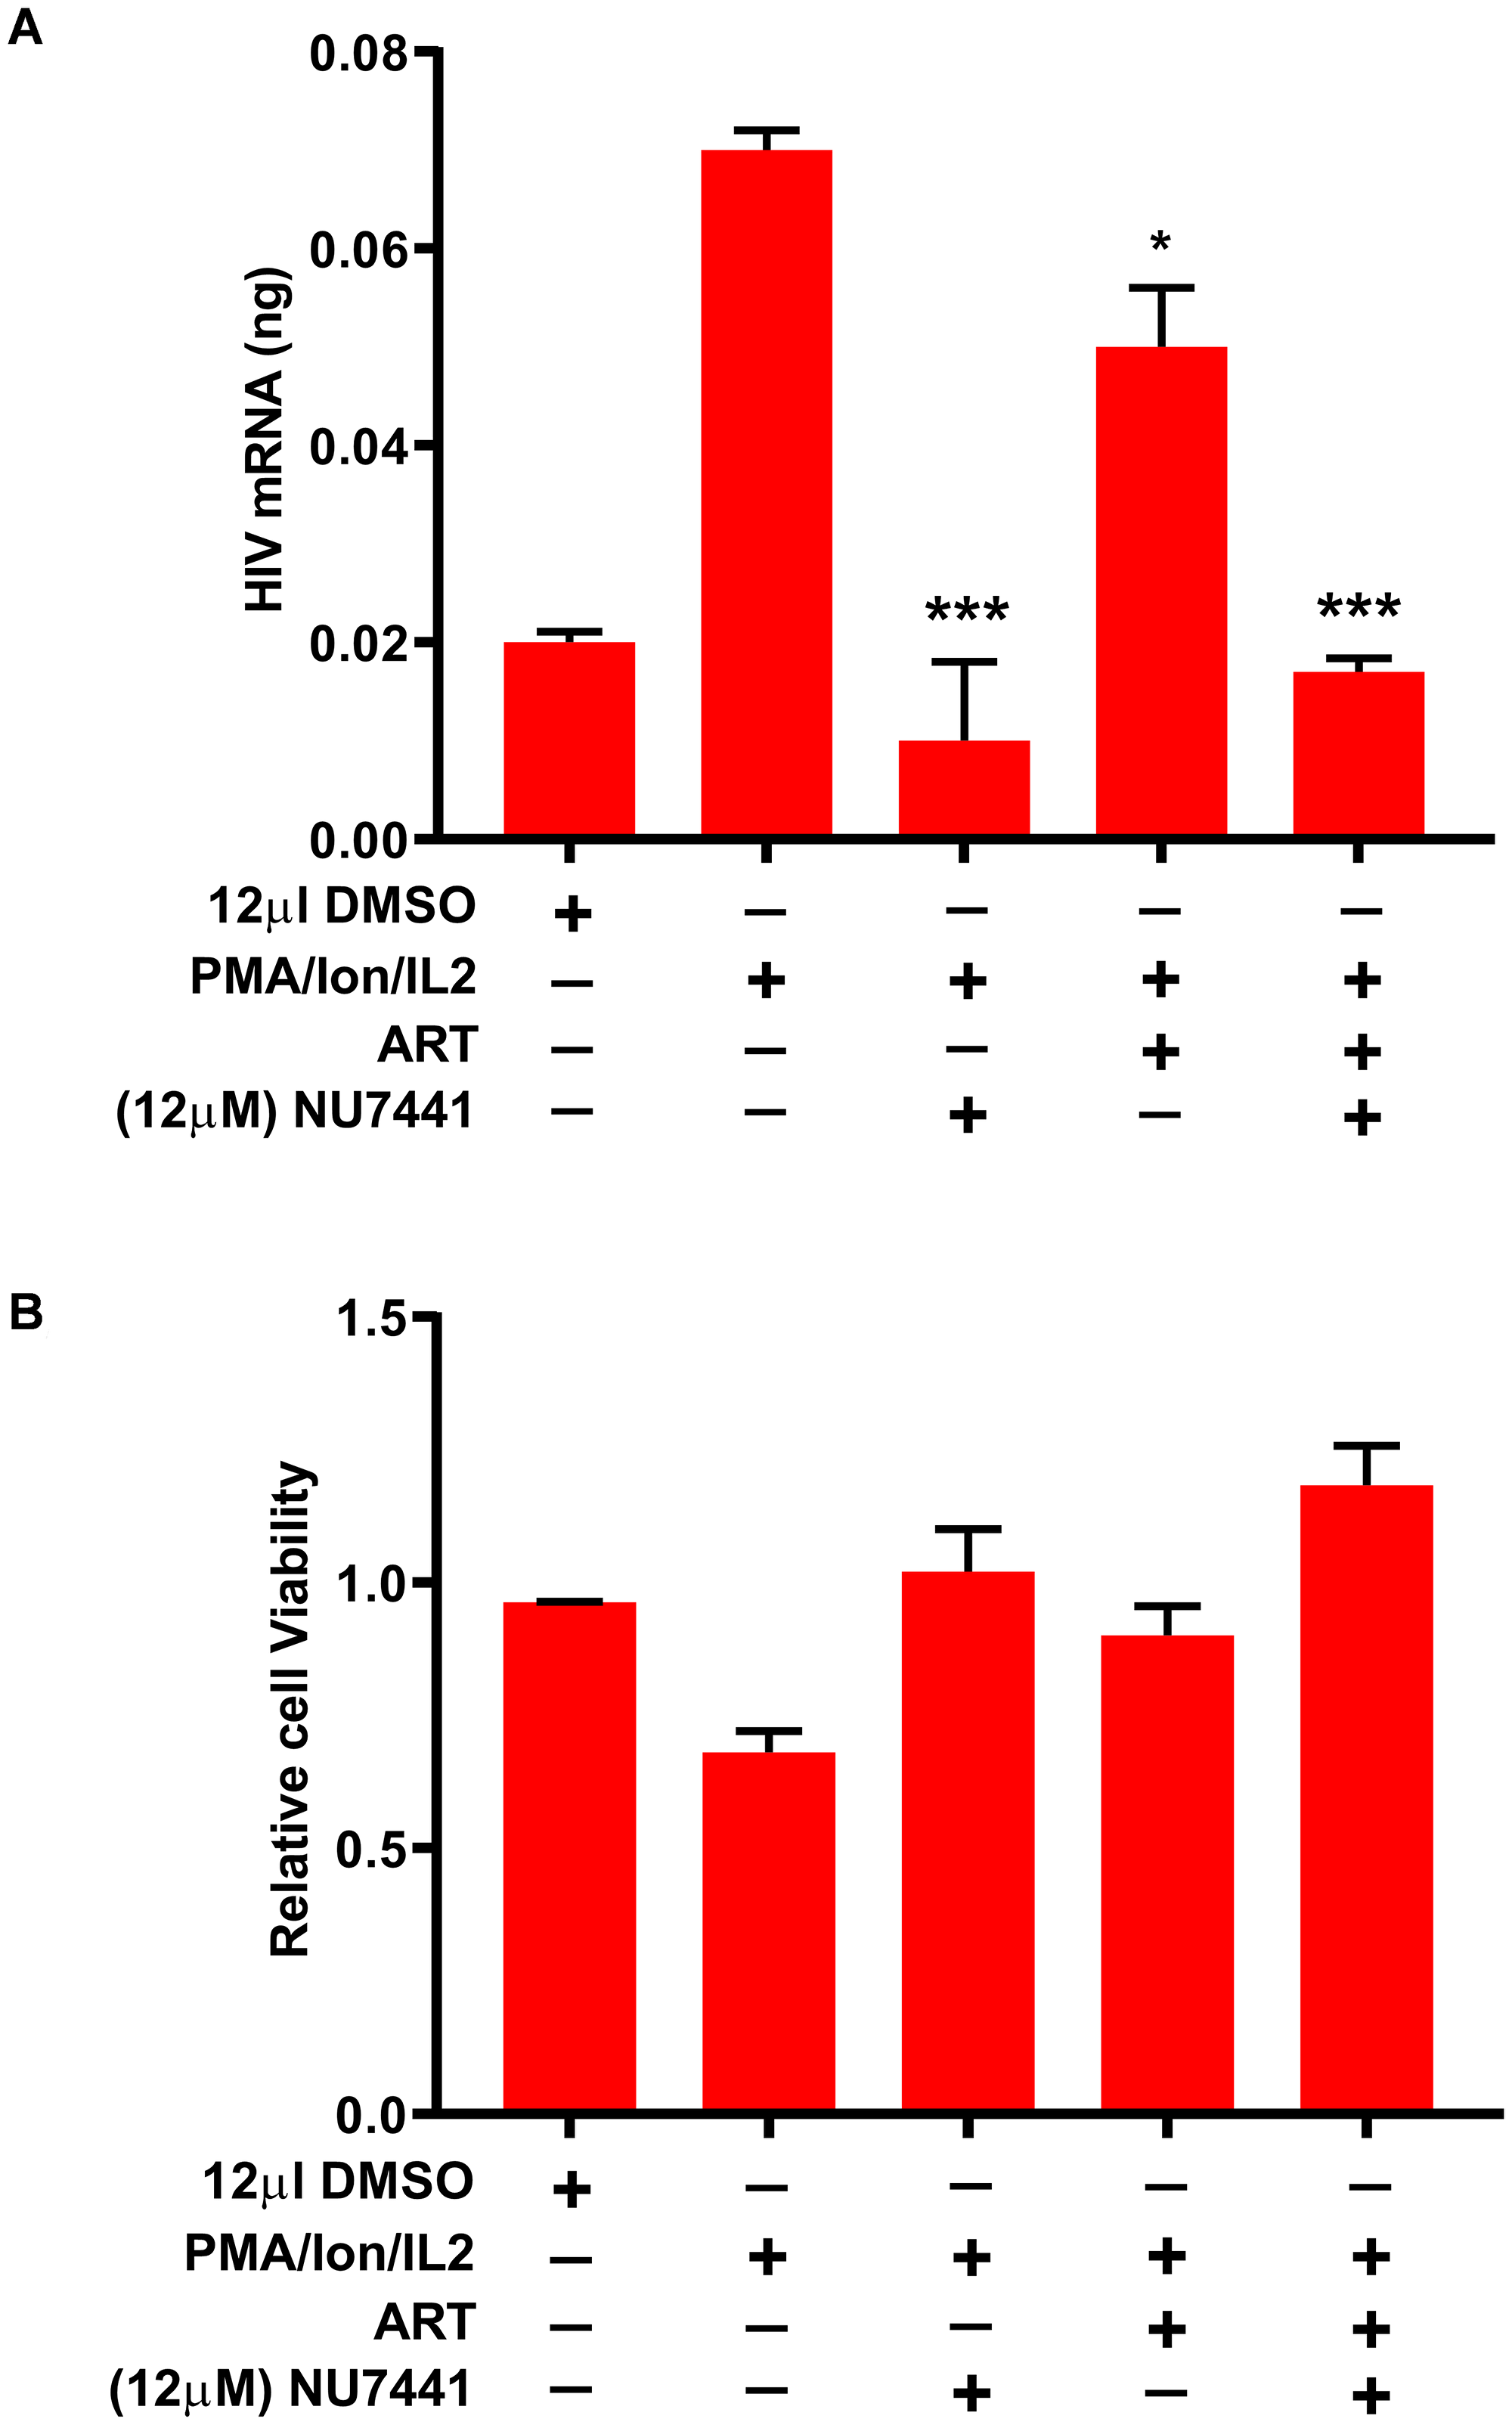 DNA-PK inhibitors restrict the reactivation of latent provirus in PBMCs of HIV-infected patients.